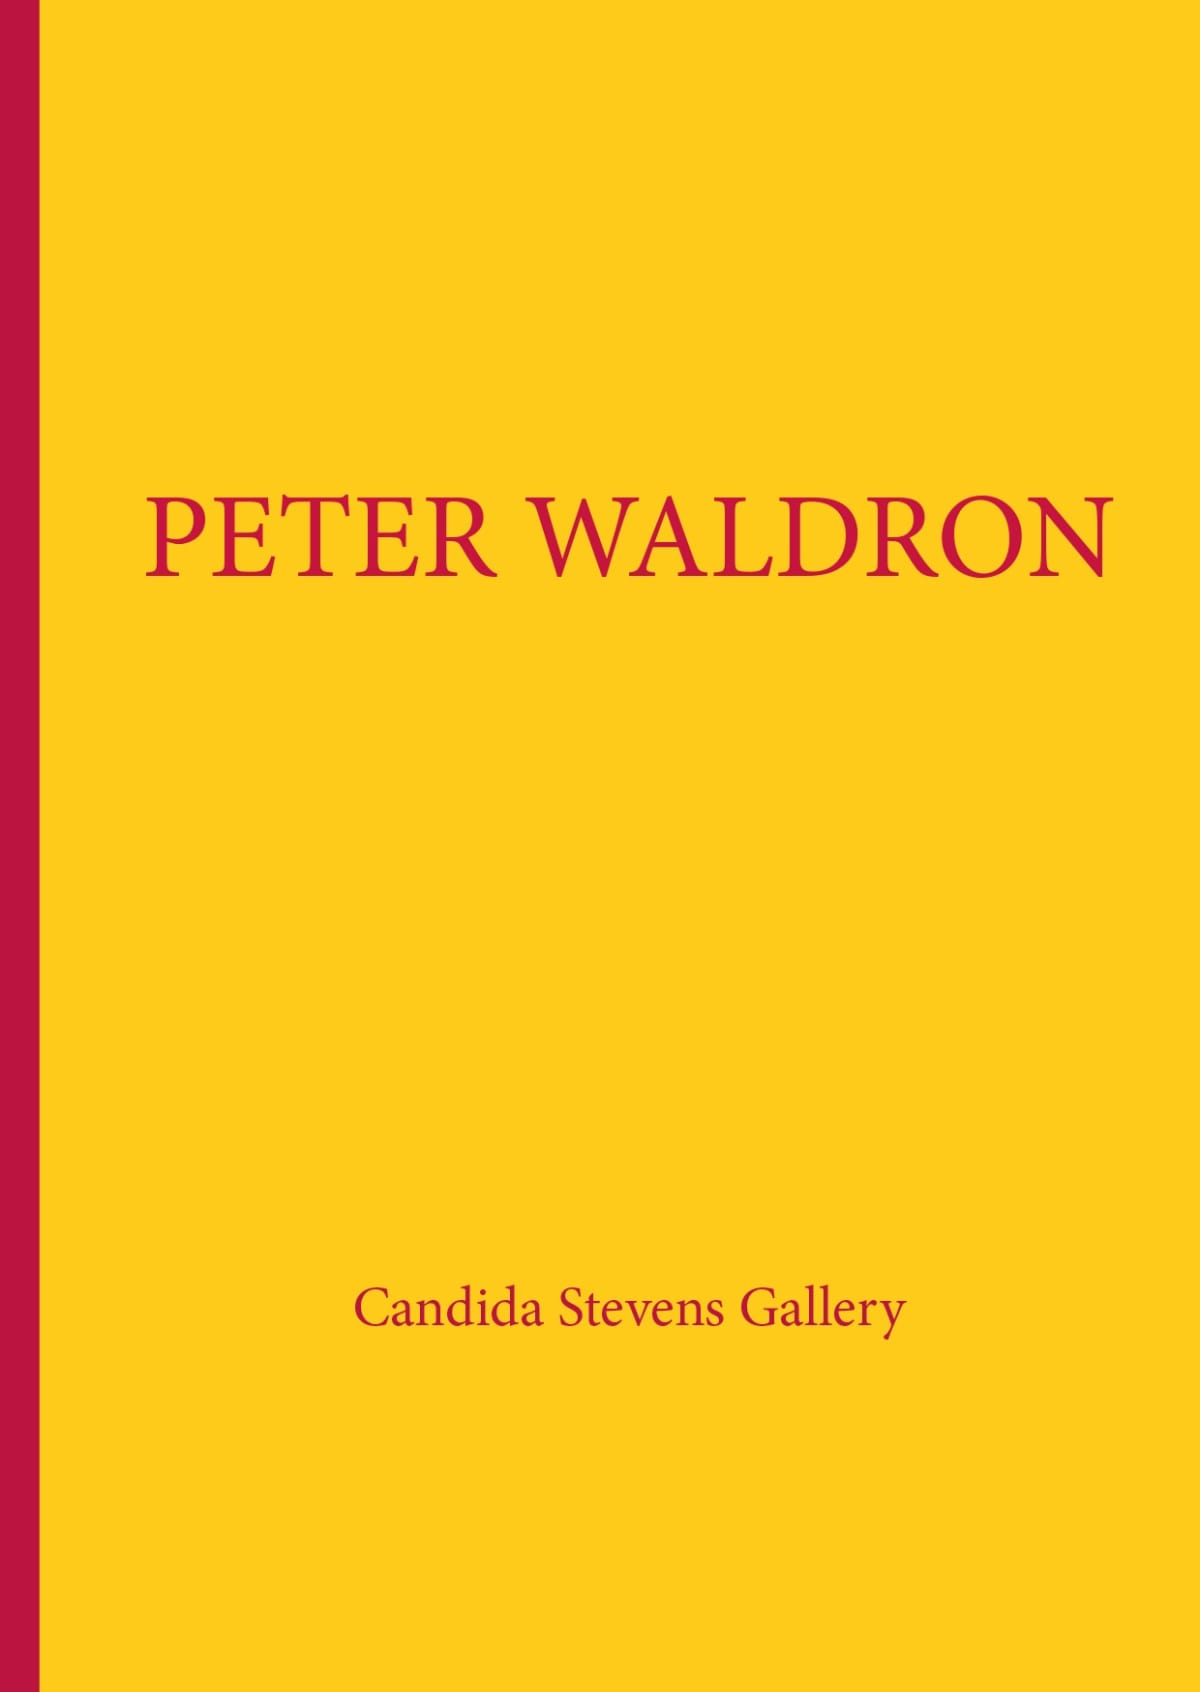 Peter Waldron